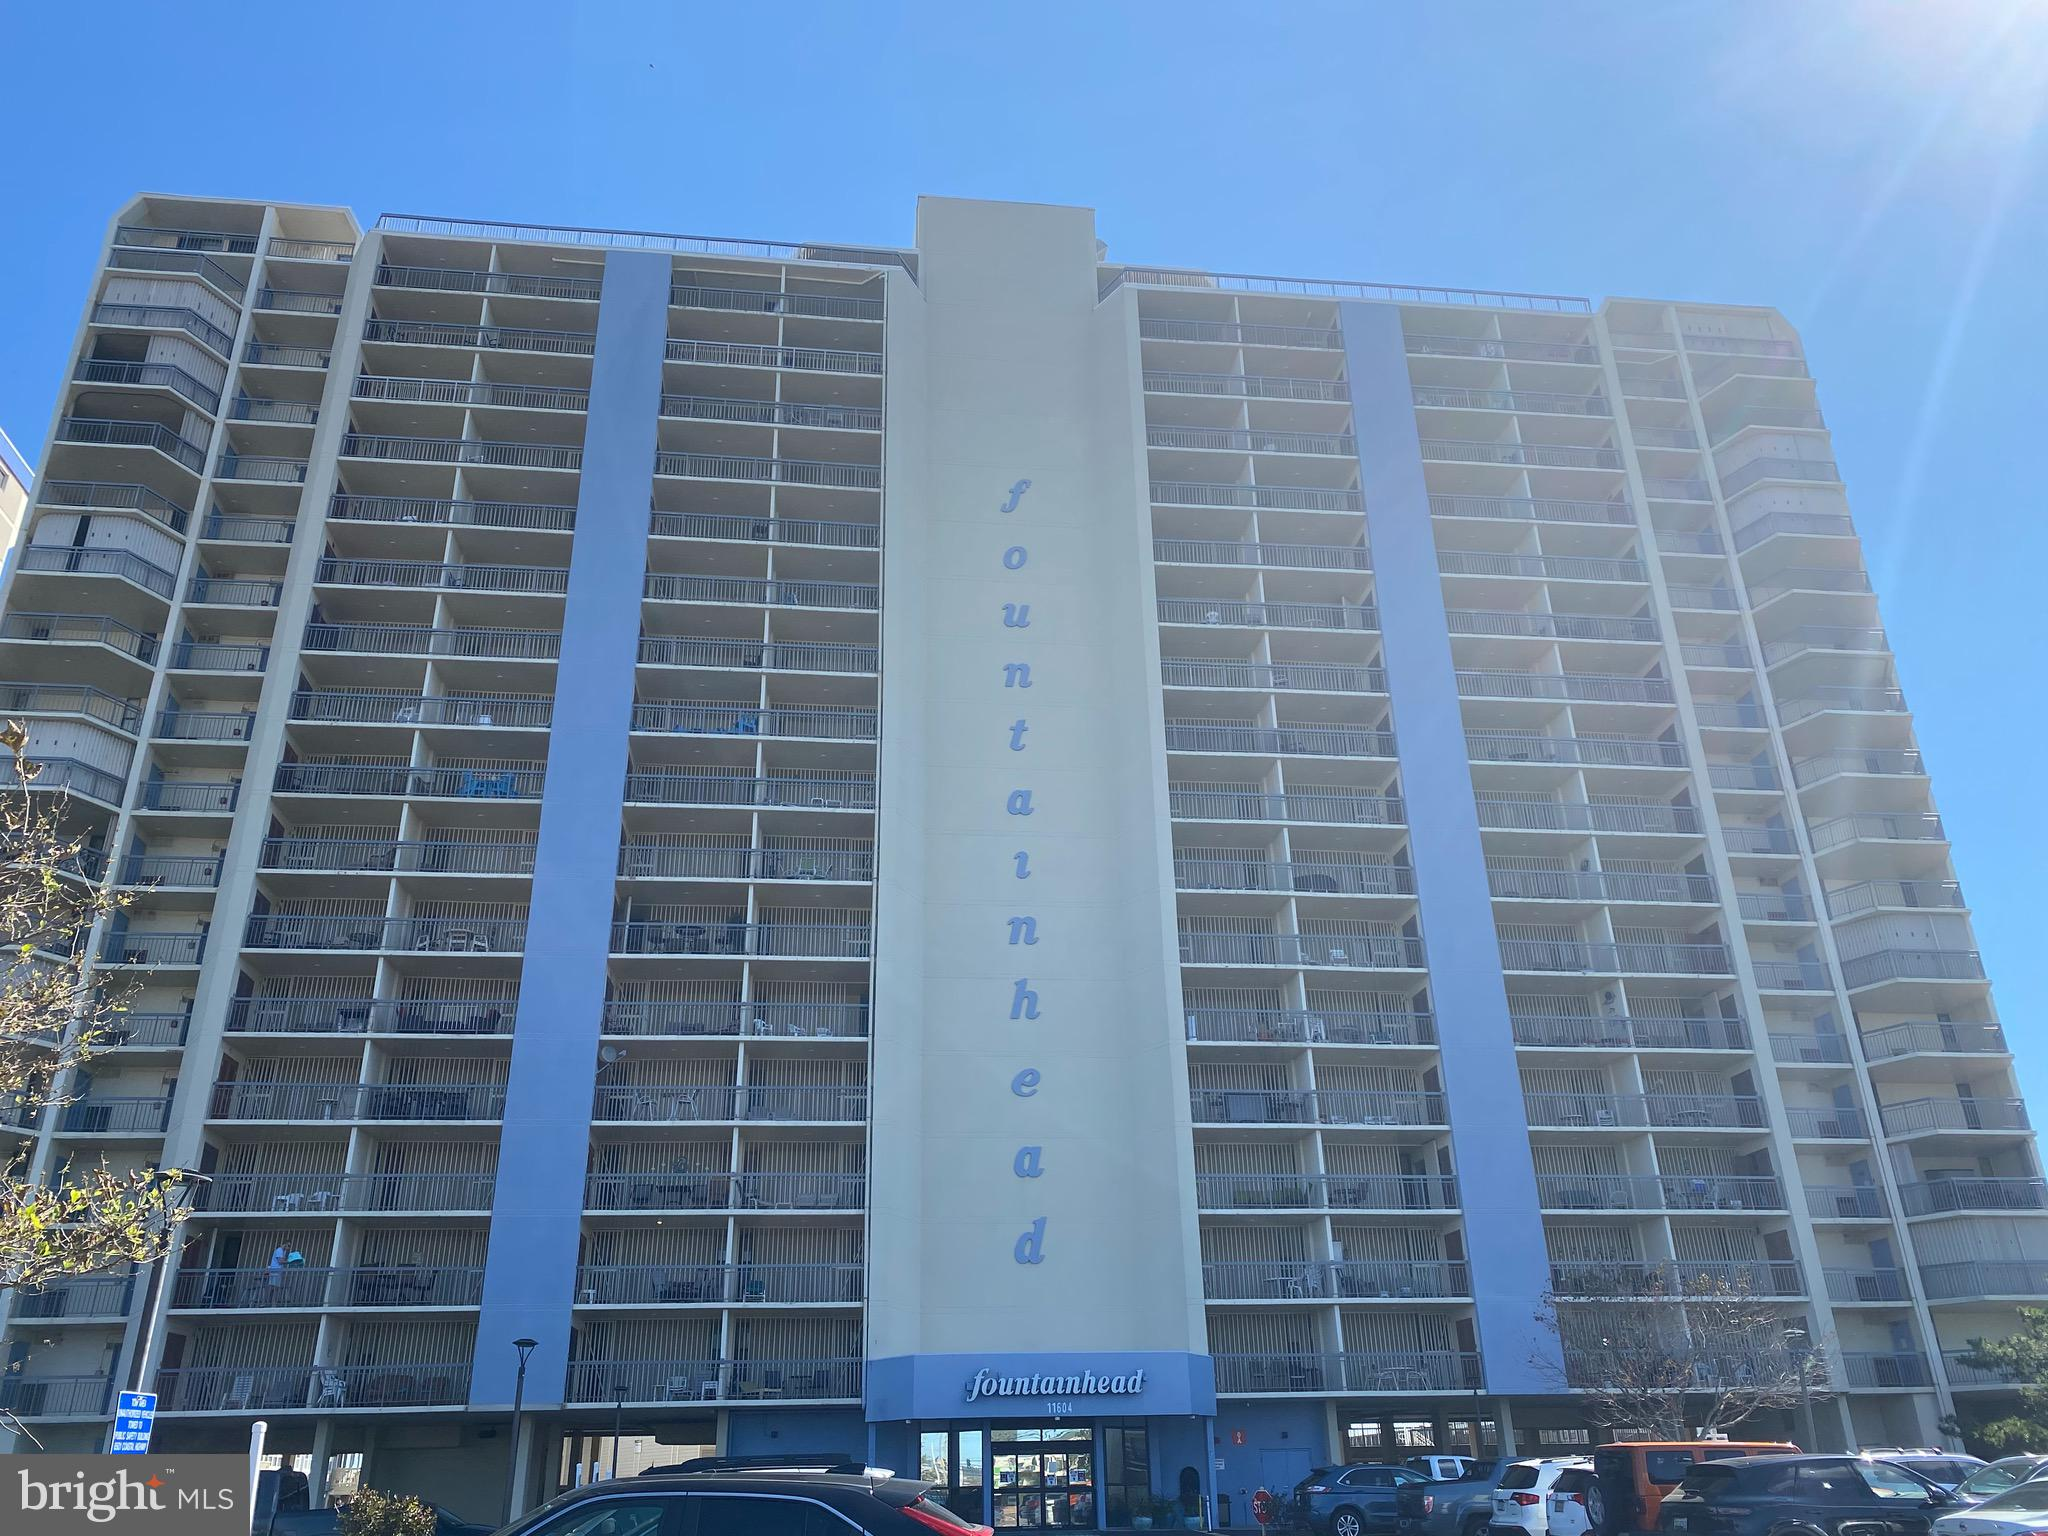 Direct Ocean Front 2 bedroom 2 bathroom condo with private ocean front and bay front balcony. Remodeled in 2018 with solid flooring and new furnishings. This unit has been an excellent rental since owned.